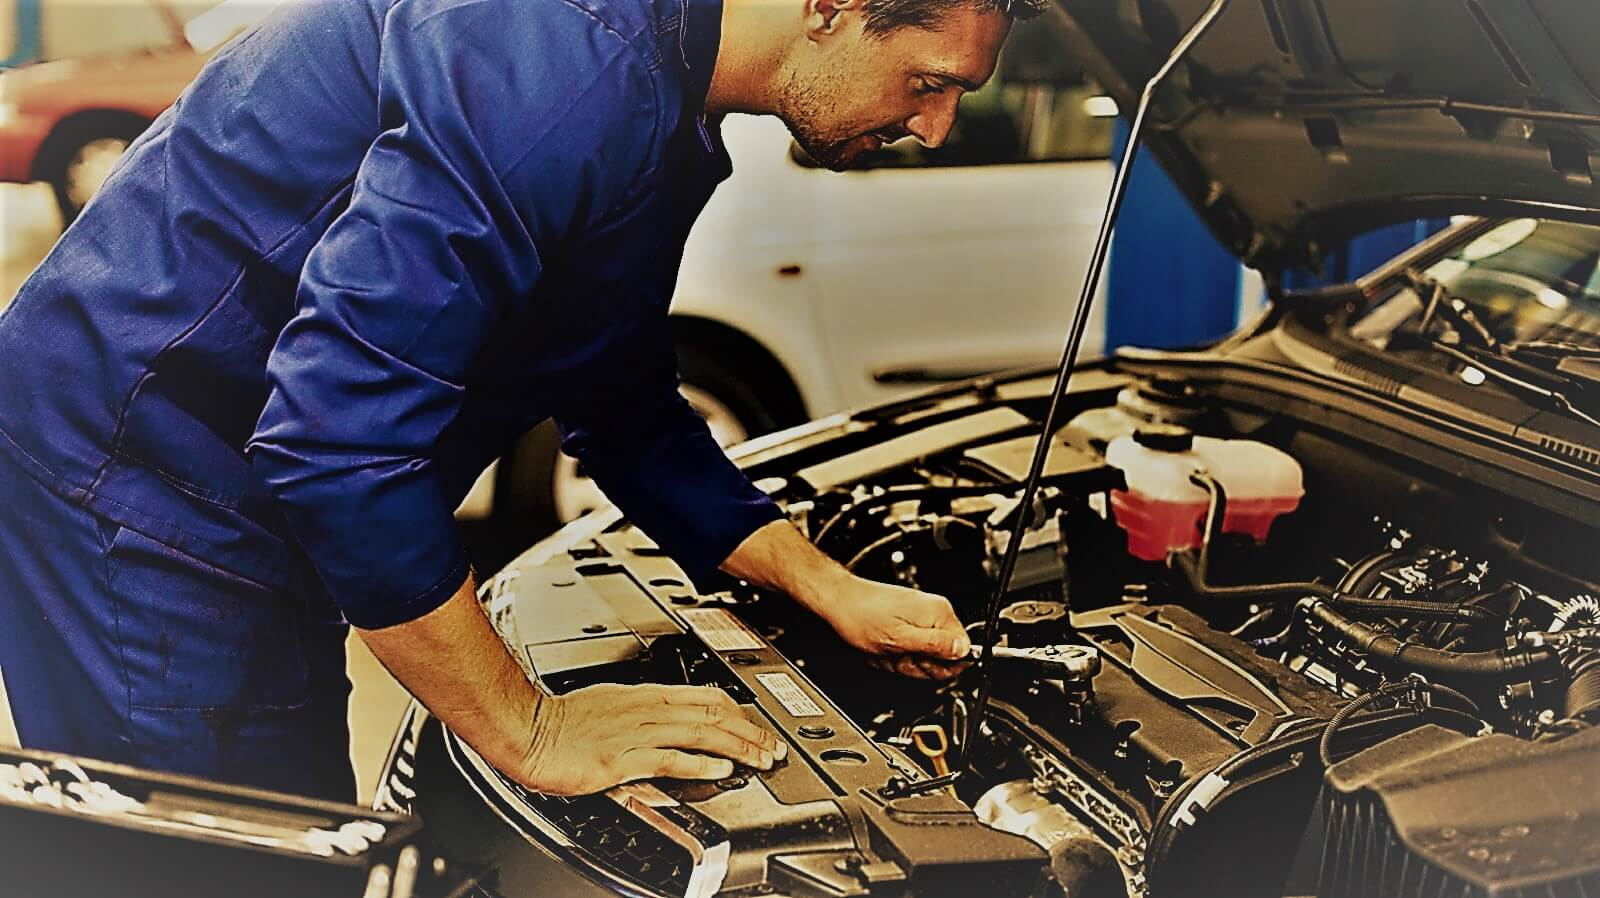 Car Inspection - AA Vehicle Inspection RAC Car Inspections [The Facts]